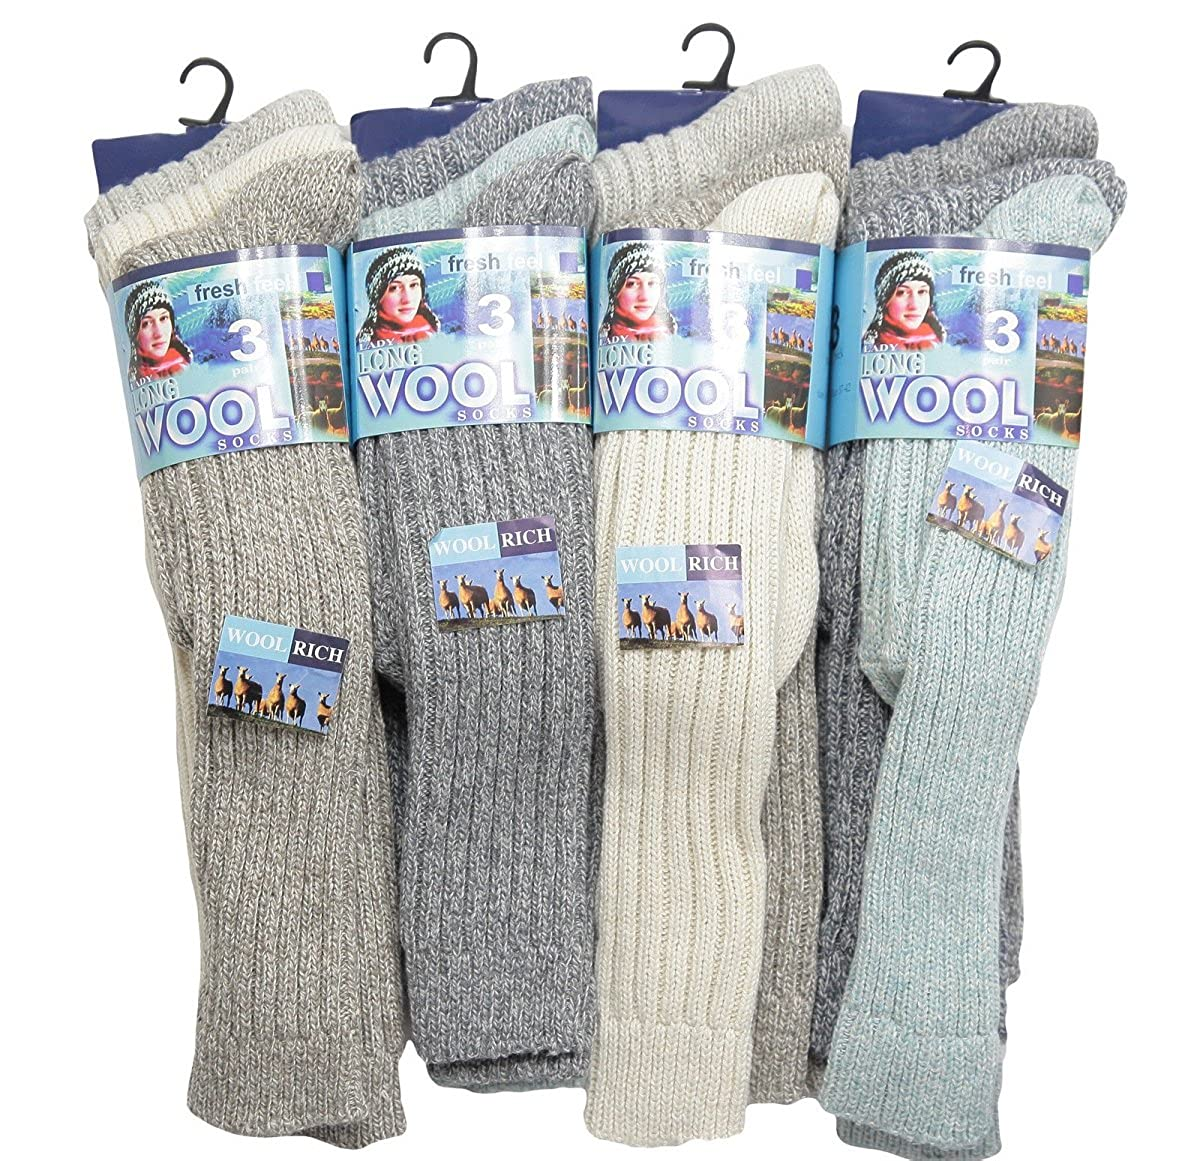 (FF11) LADIES 6prs CHUNKY THERMAL WARMTH WINTER LONG WOOL BOOT WALKING HIKE SOCKS Assorted)